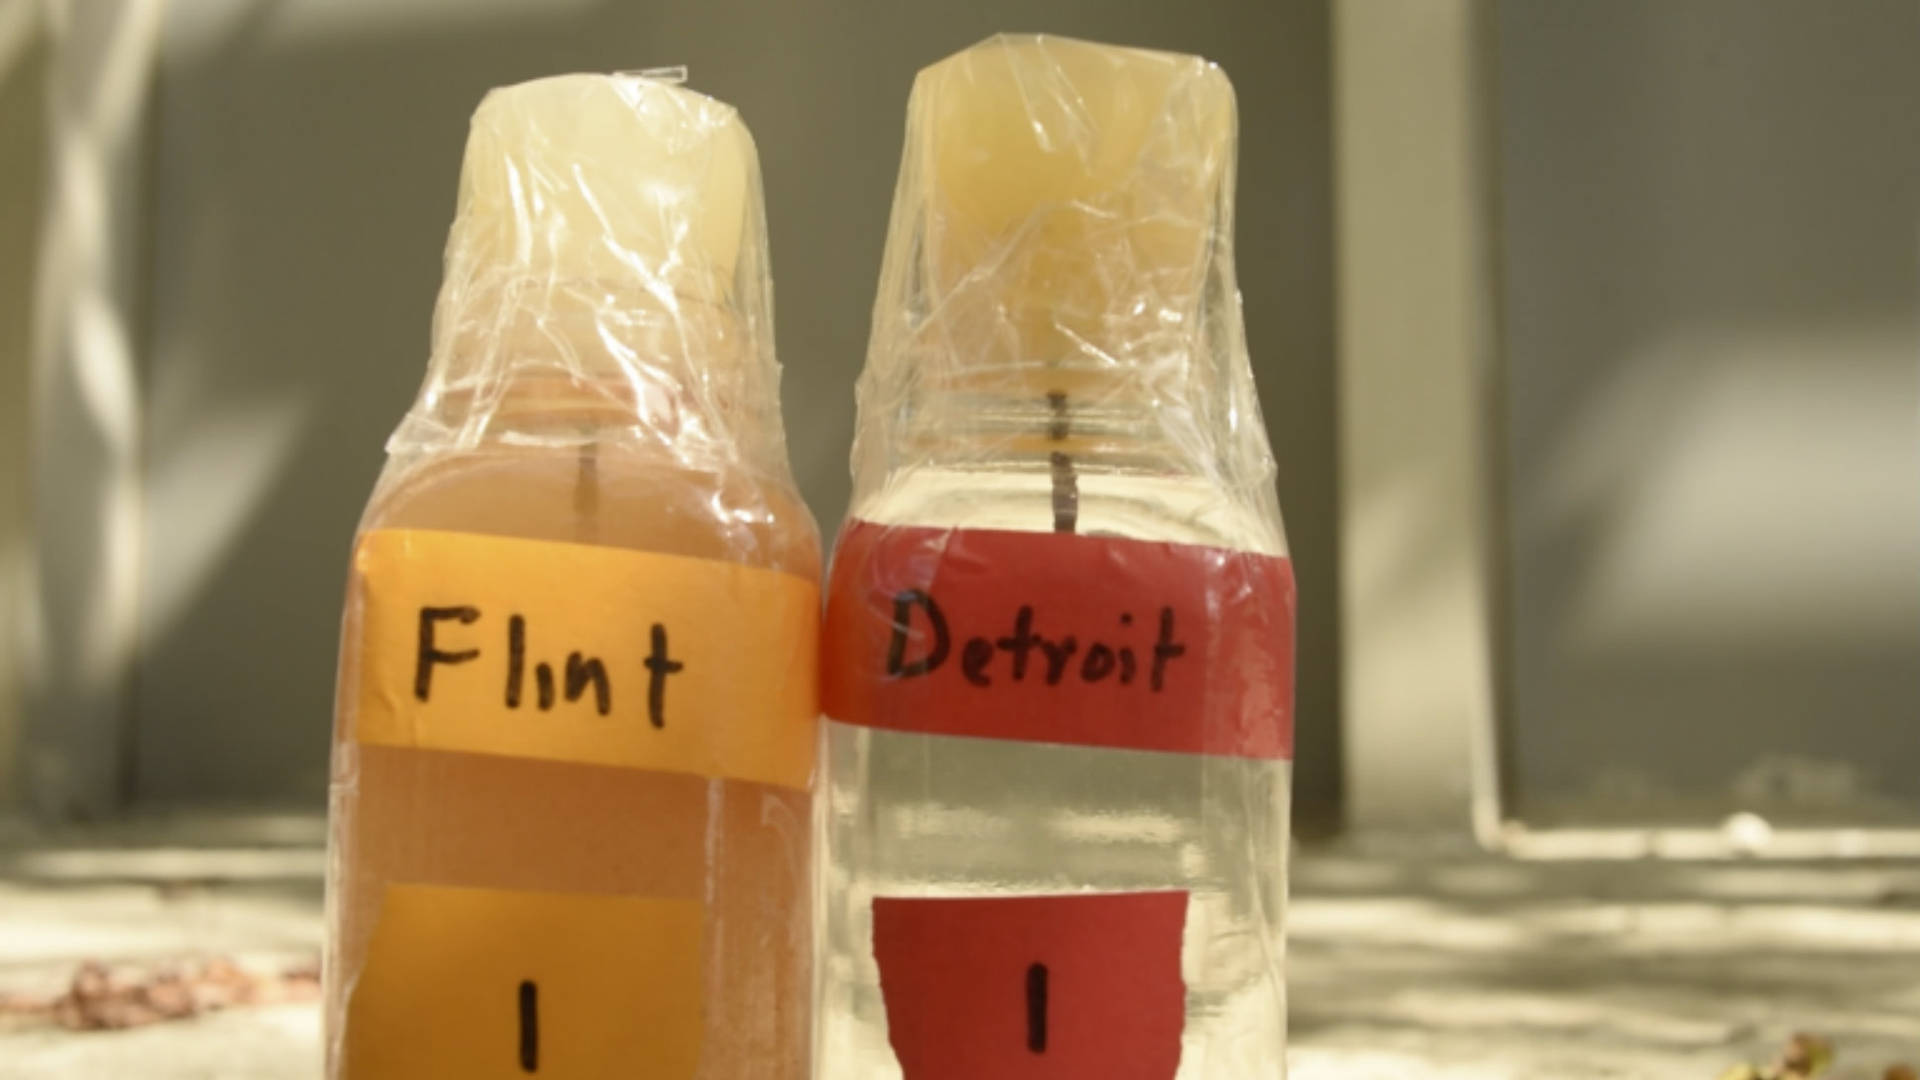 Flint's water now contains dangerously high levels of lead after the town switched from Detroit to a more local water source.